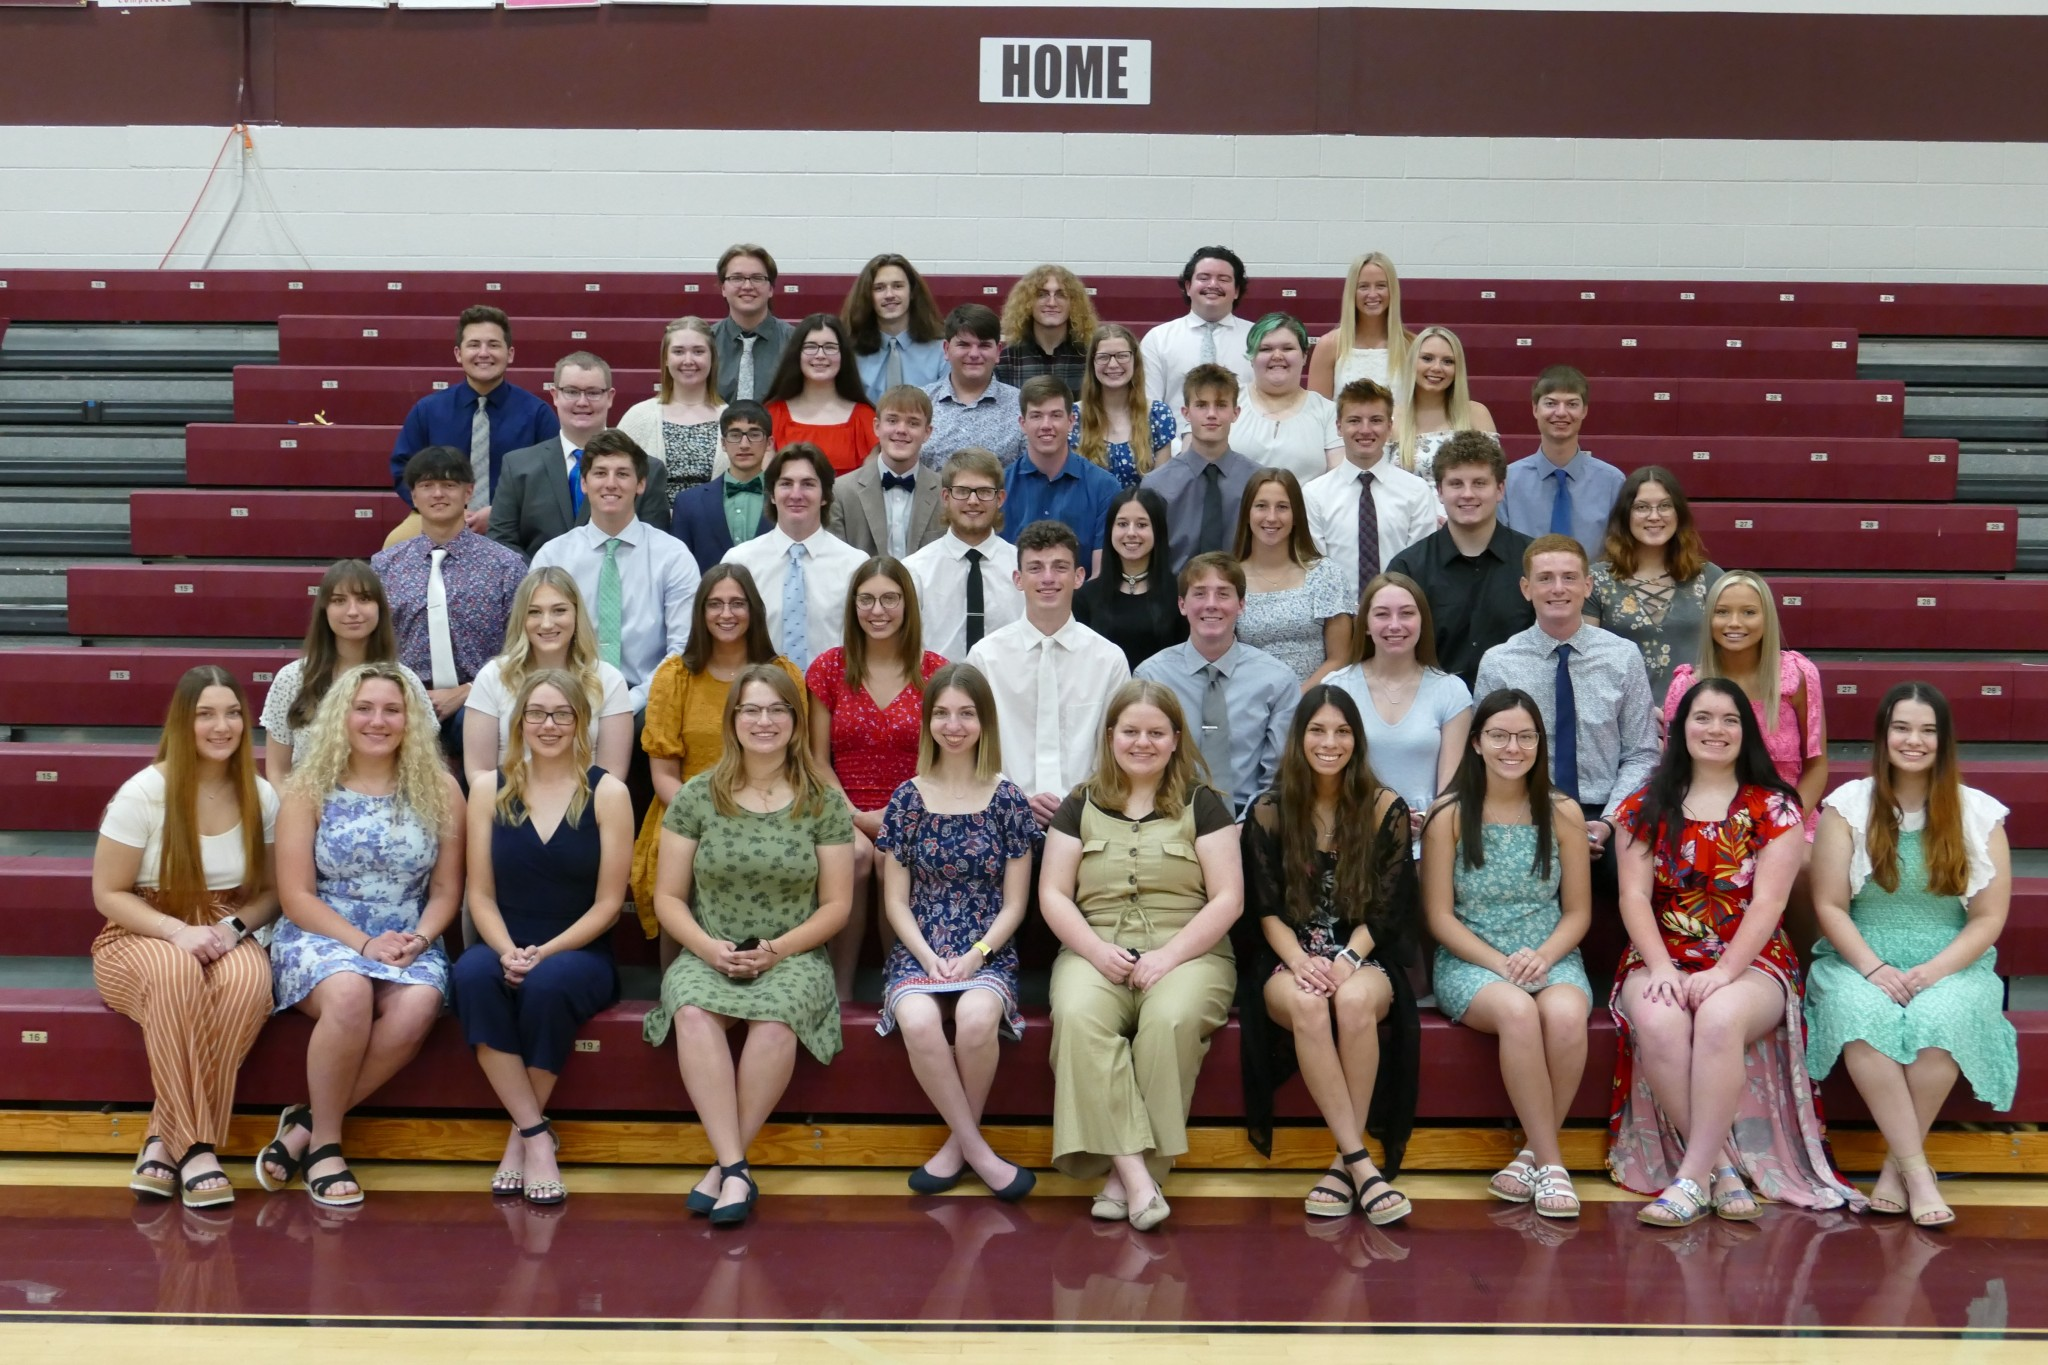 The Genoa Area Local Schools Scholarship Foundation, Inc., which is celebrating 30 years in 2021, announced this year's scholarship recipients an awards program held at Genoa High School on May 21. (Submitted photo)